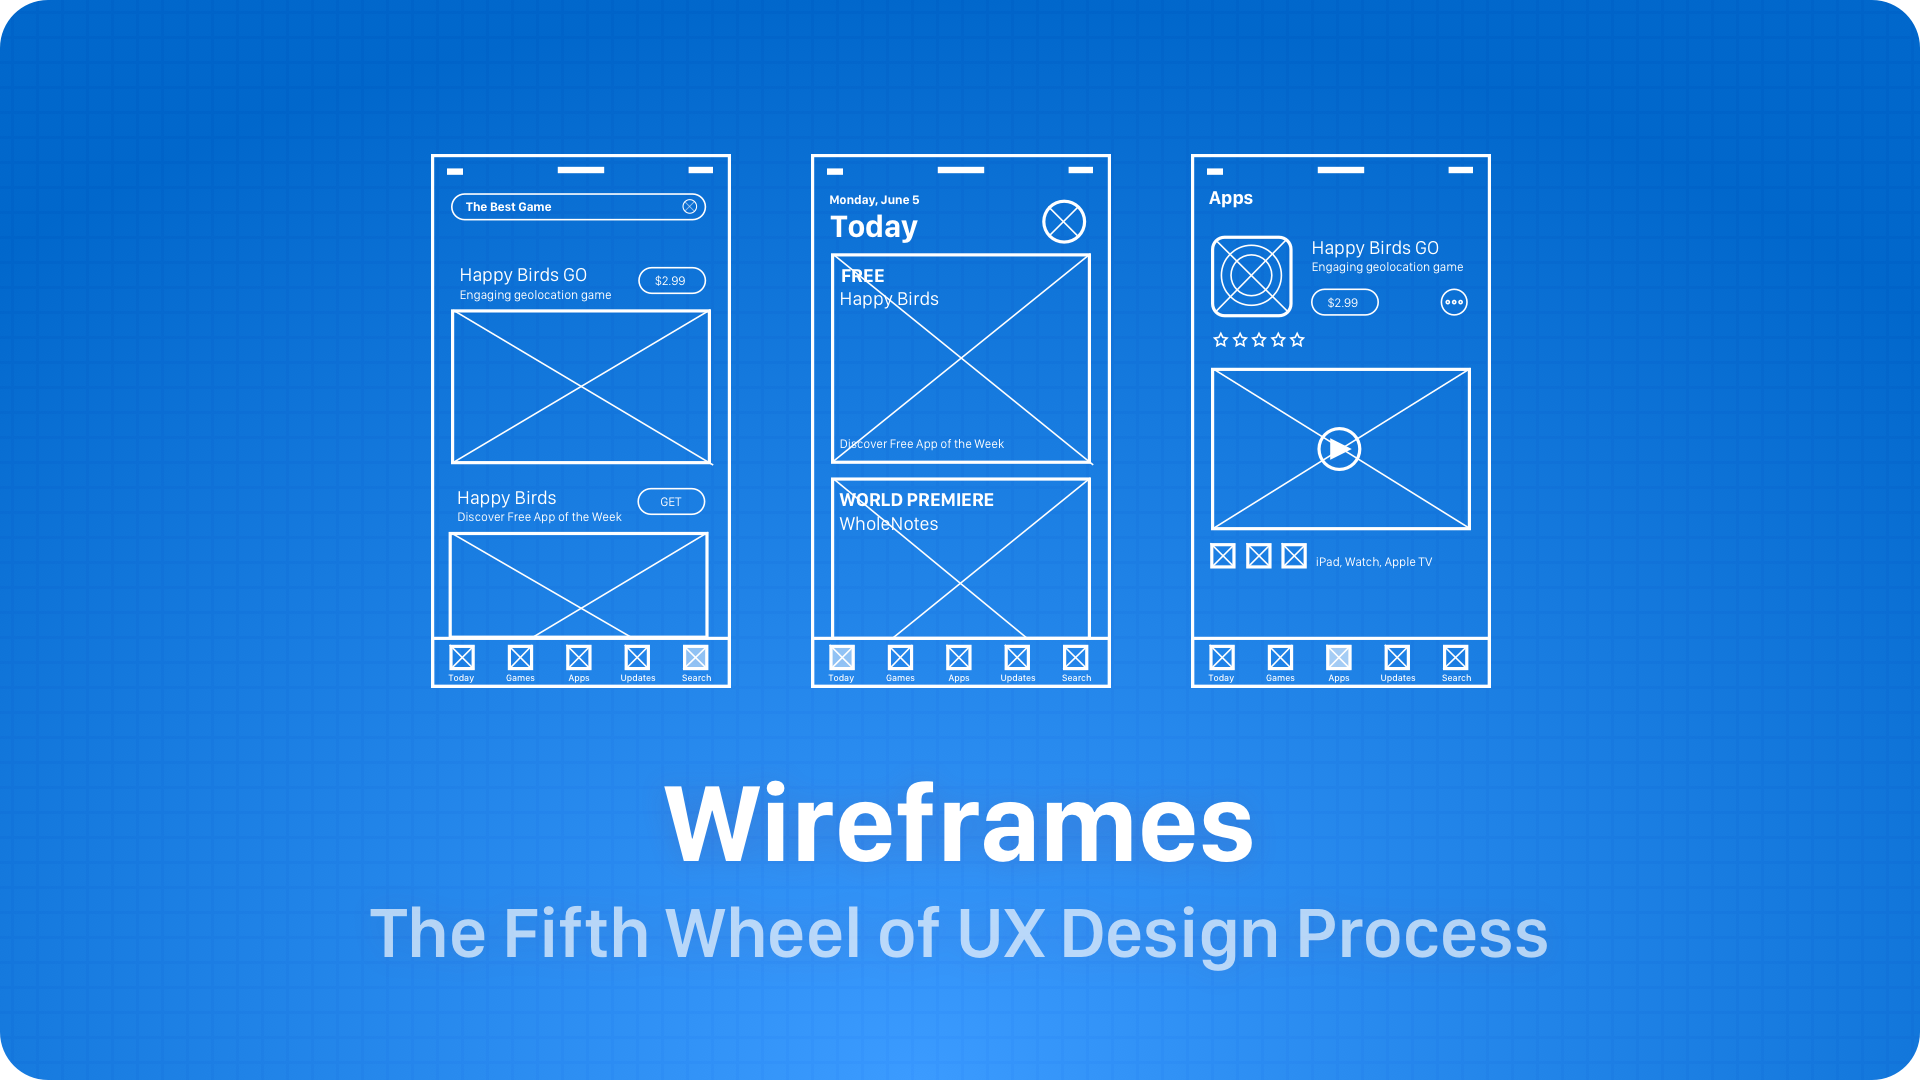 wireframes  u2013 the fifth wheel of ux design process  how to design without them